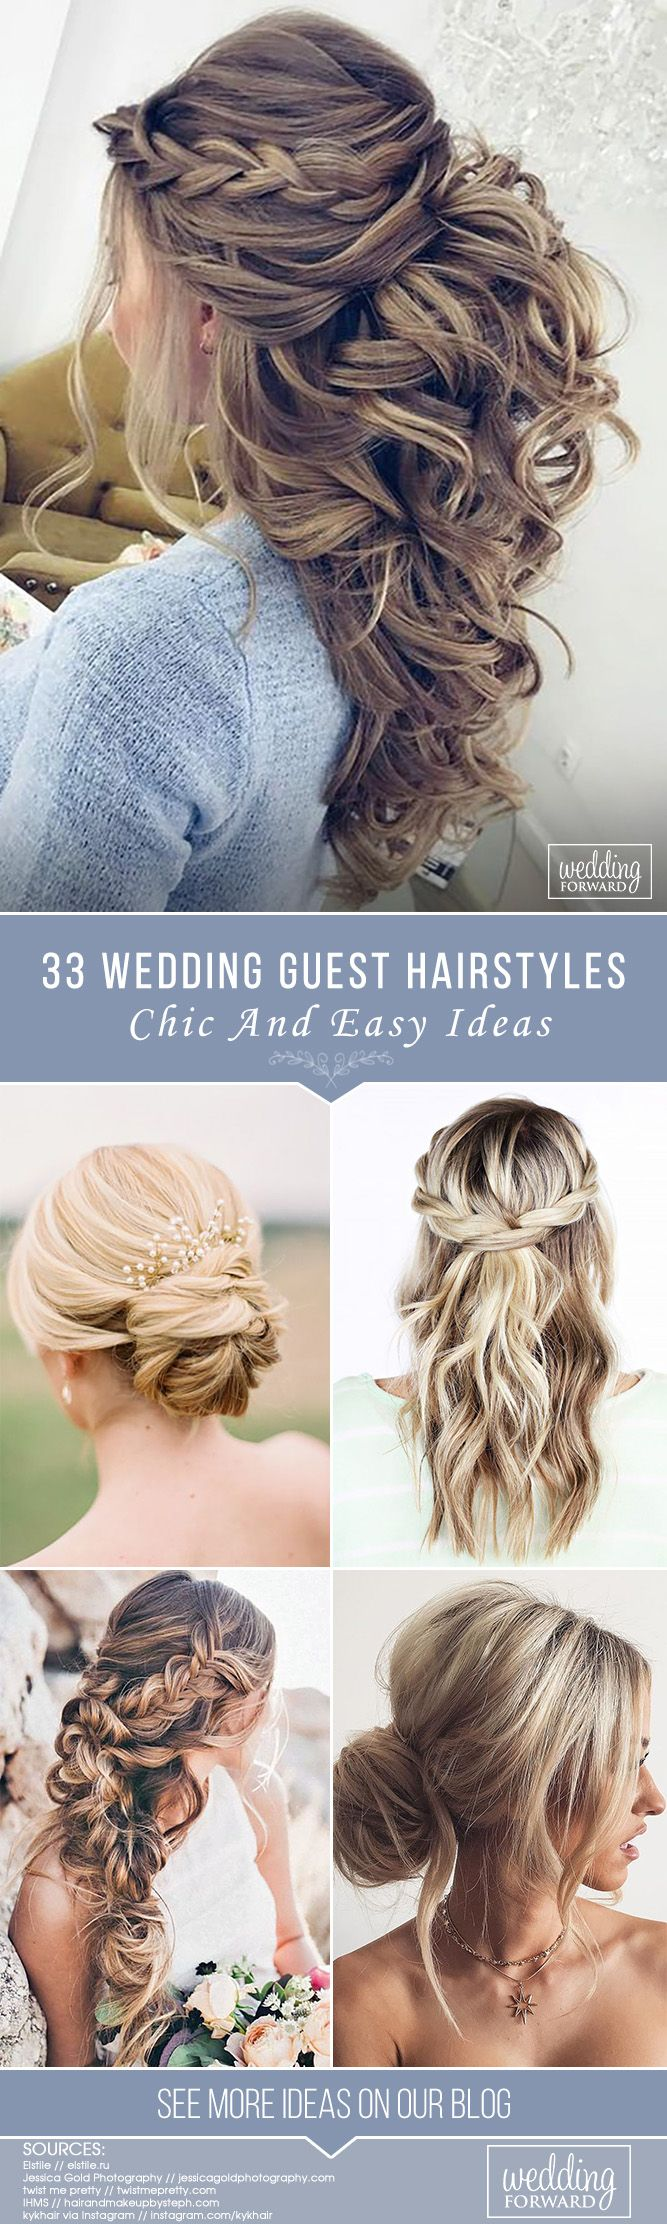 chic and easy wedding guest hairstyles hair styles pinterest